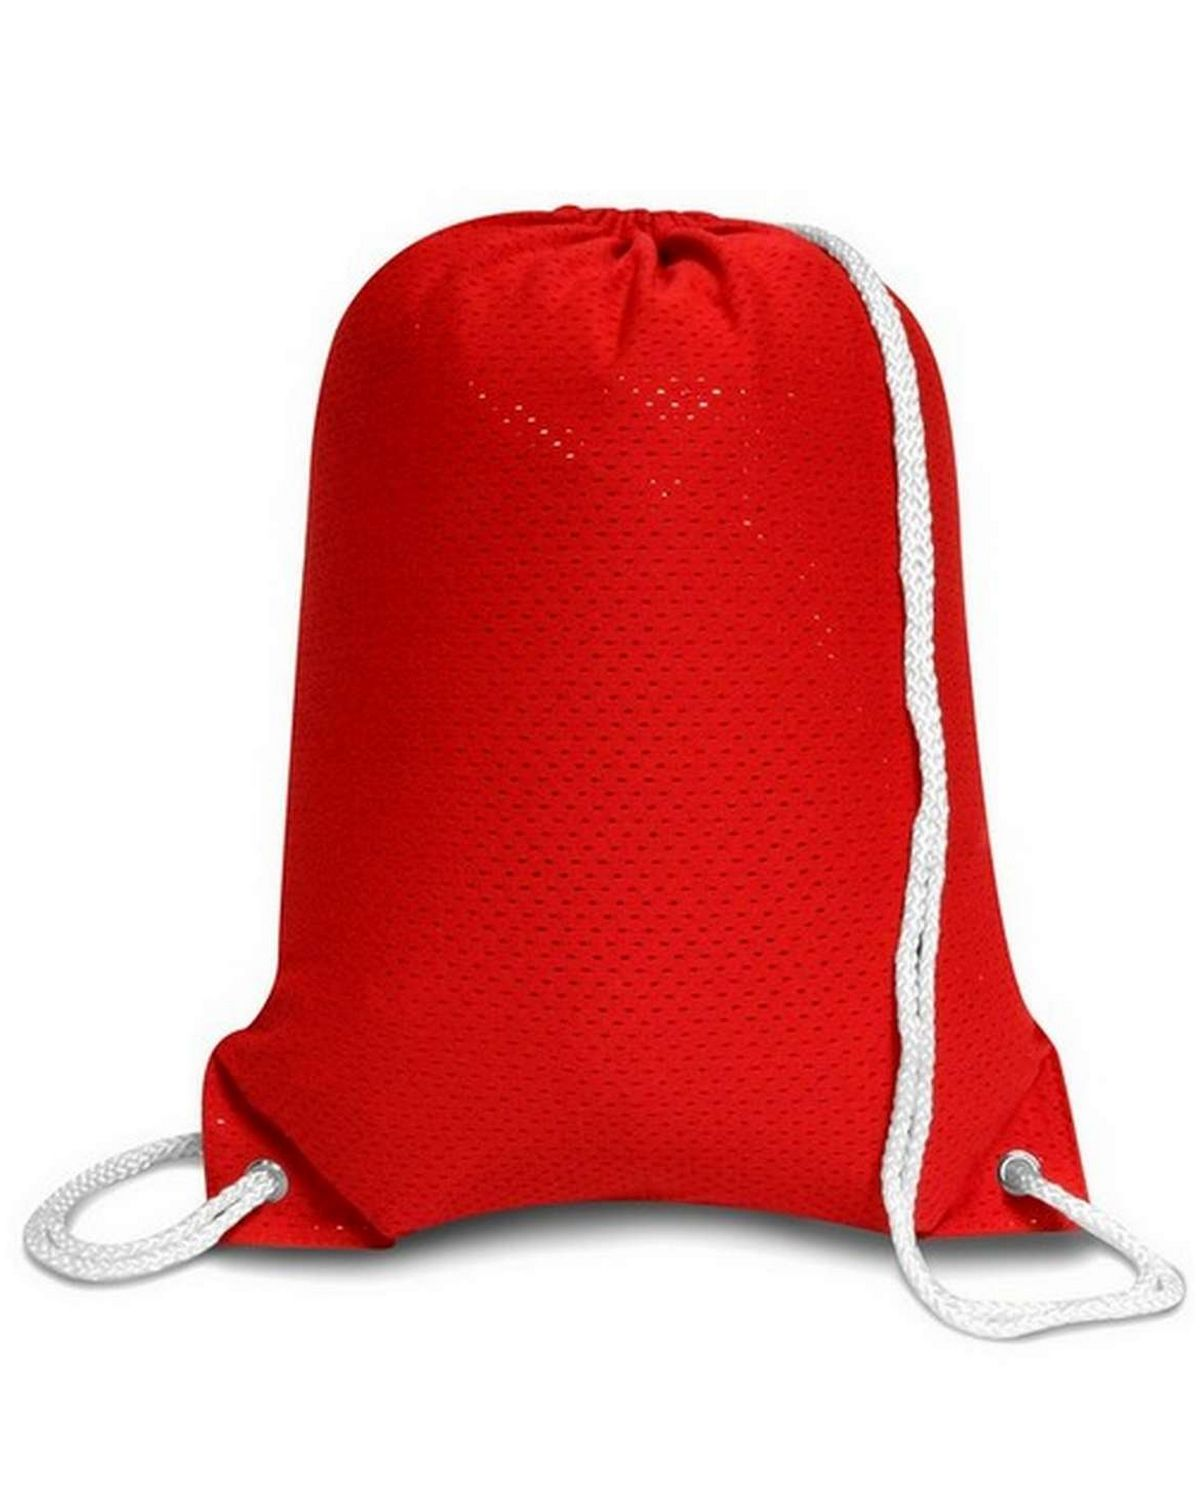 Liberty Bags 8895 Jersey Mesh Drawstring Sport Pack